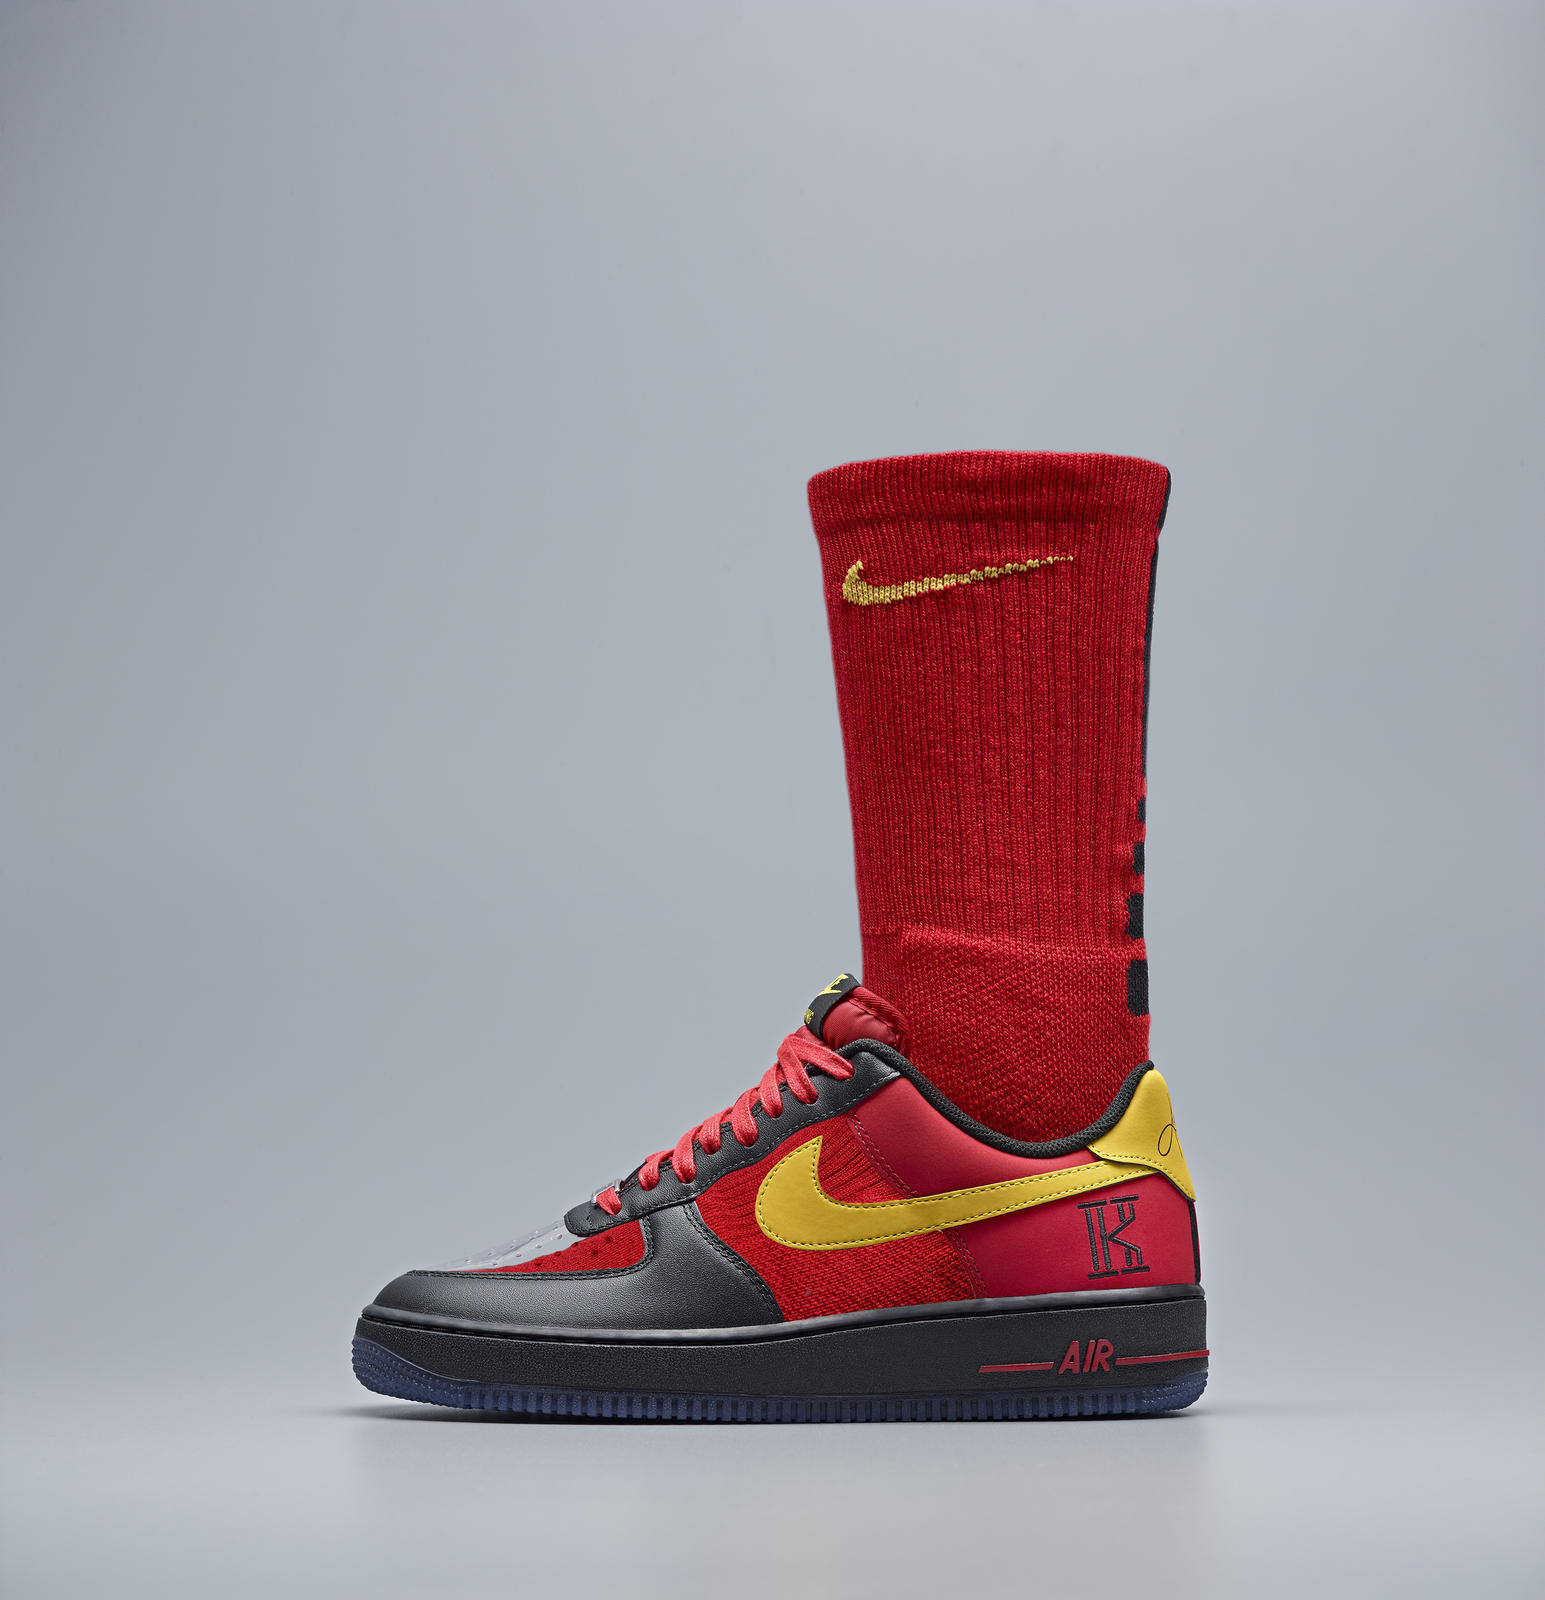 brand new 5eeec f495f INTRODUCING THE KYRIE IRVING BADGED AIR FORCE 1 - Nike News